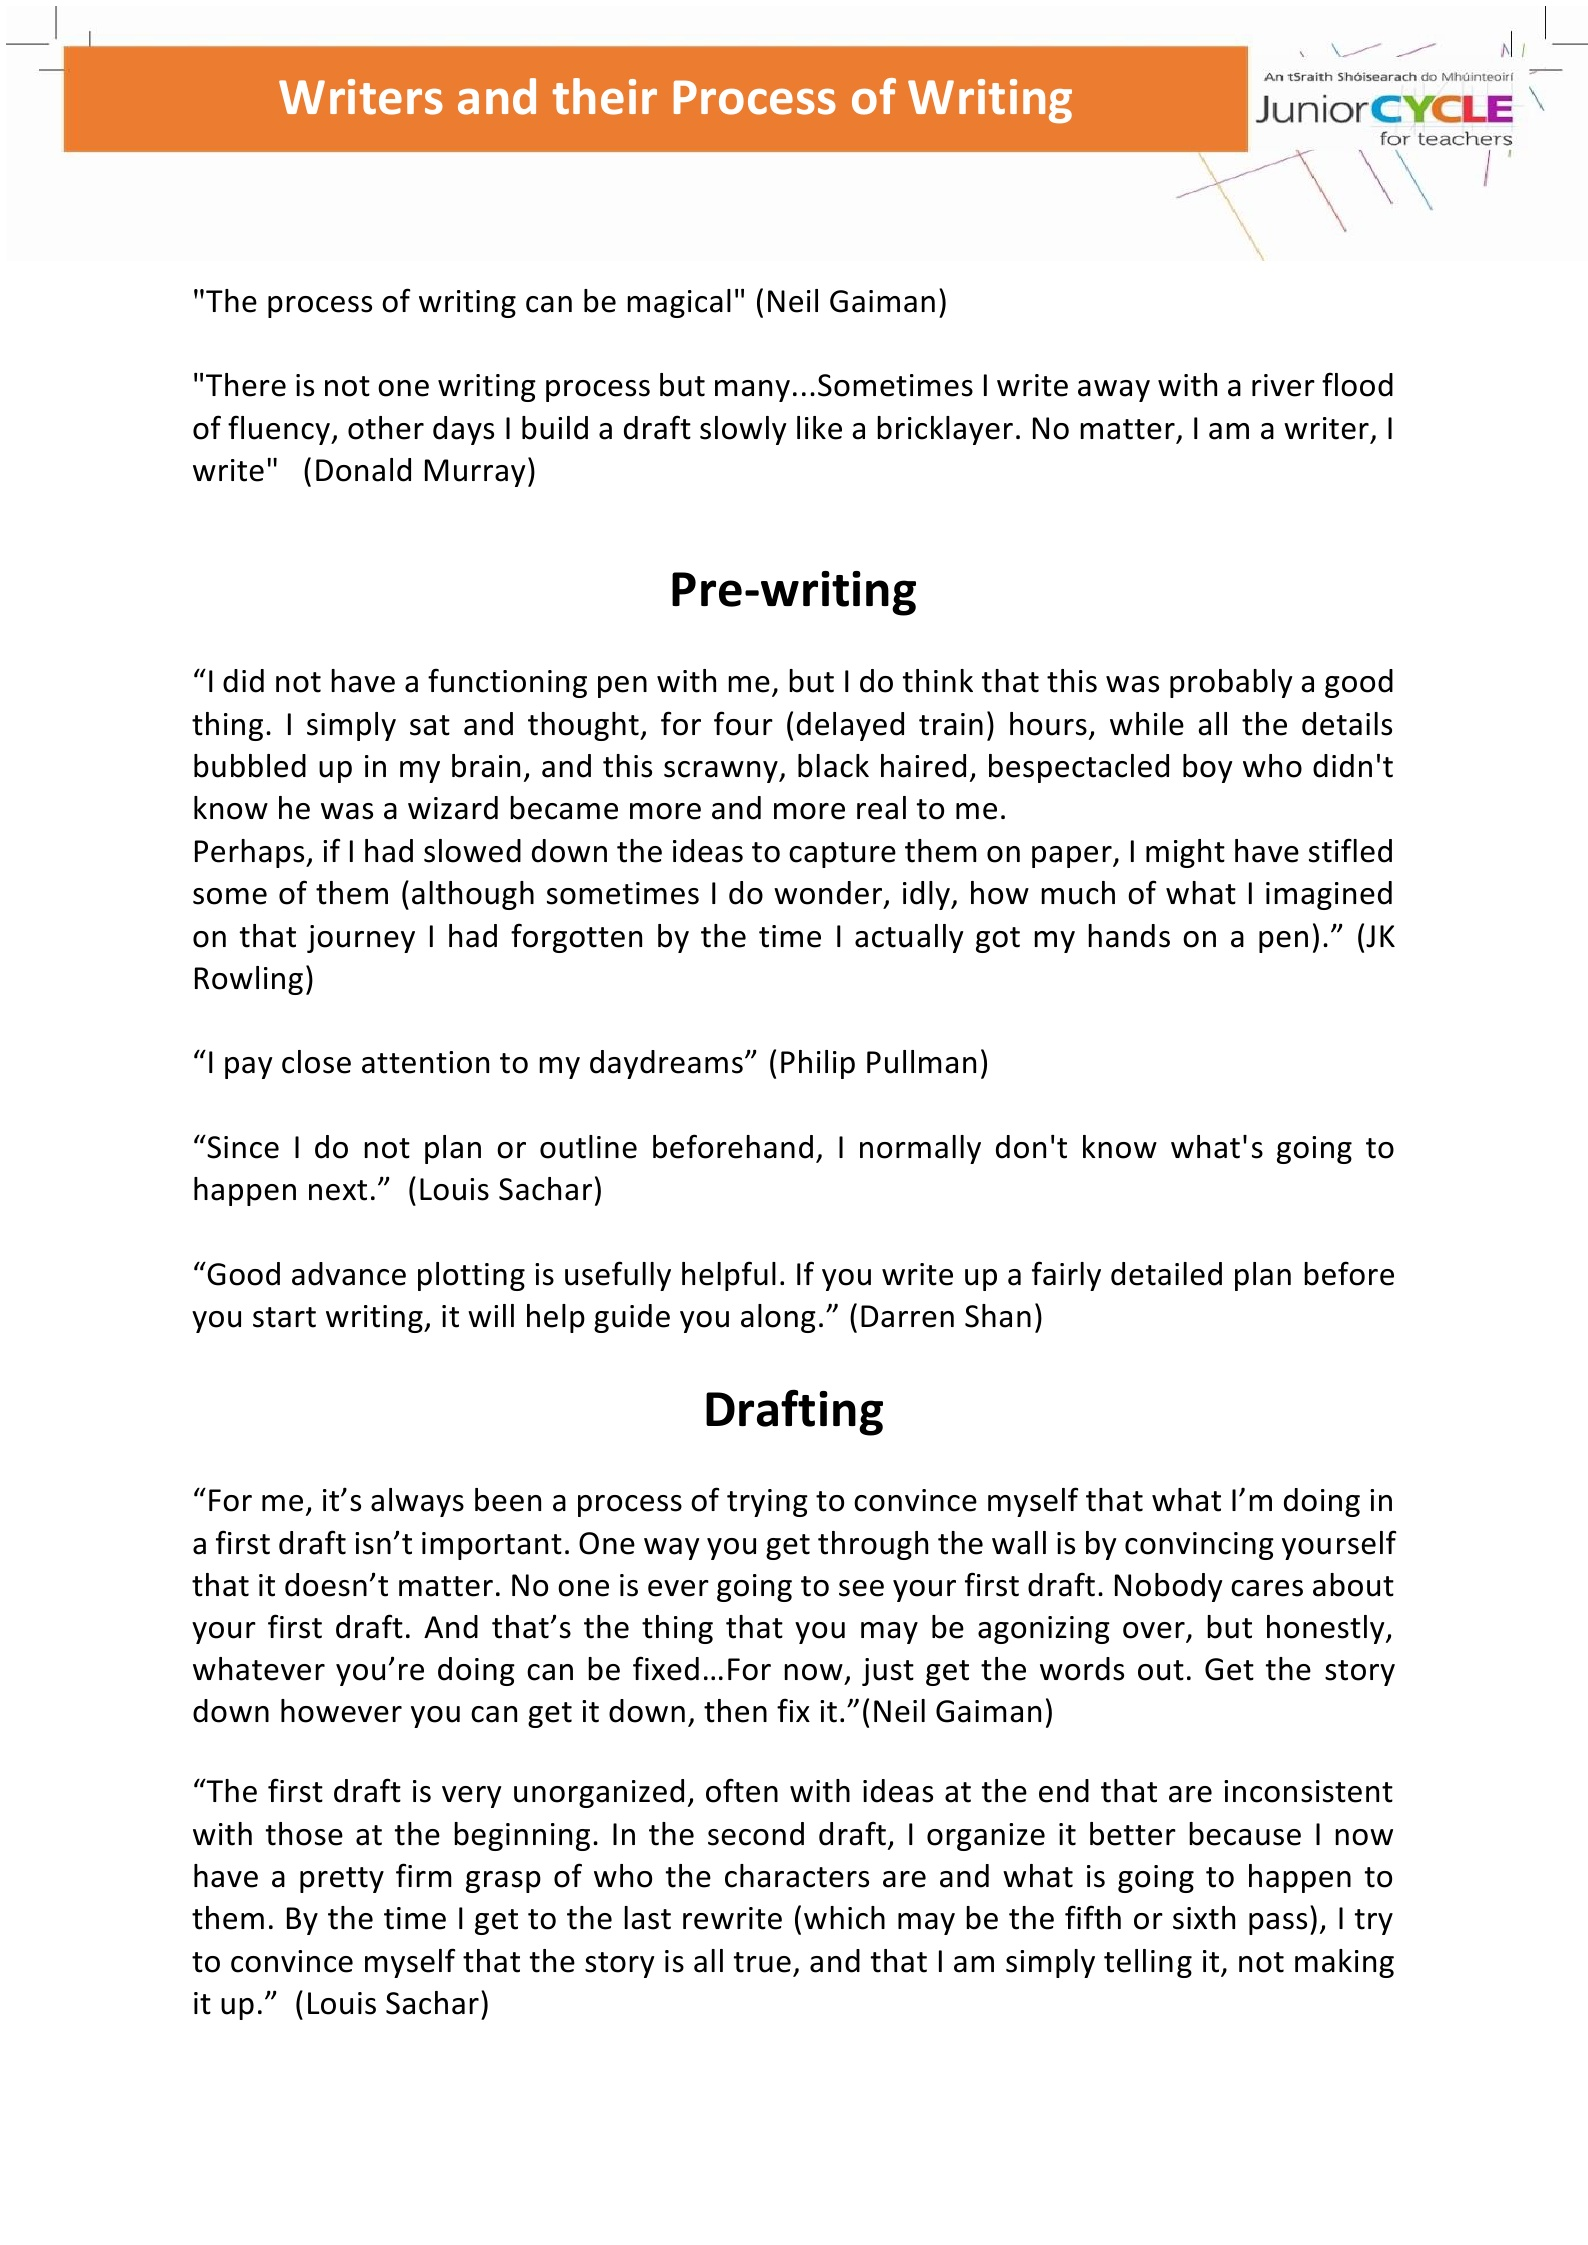 essay on short stories and their popularity Essay on short stories and their popularity, concept essay on fears research paper topics in production engineering.